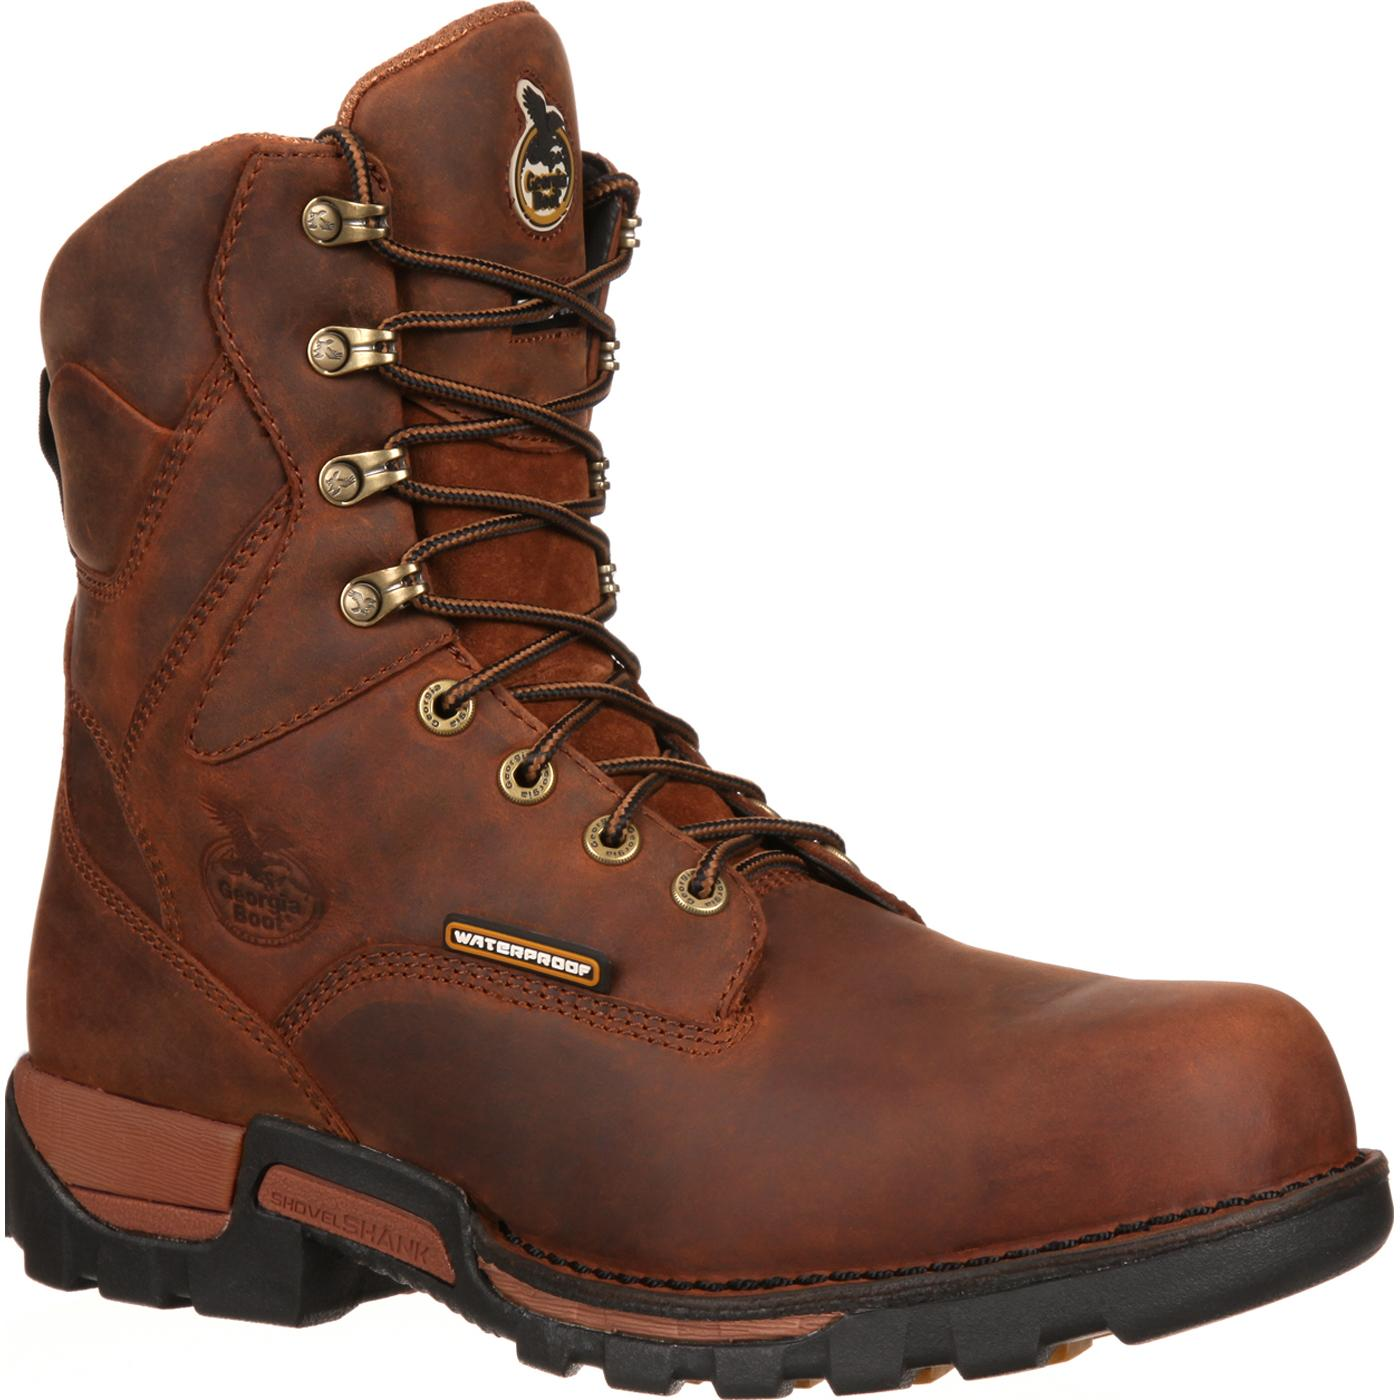 Georgia Eagle One Composite Toe Waterproof Work Boot GBOT069